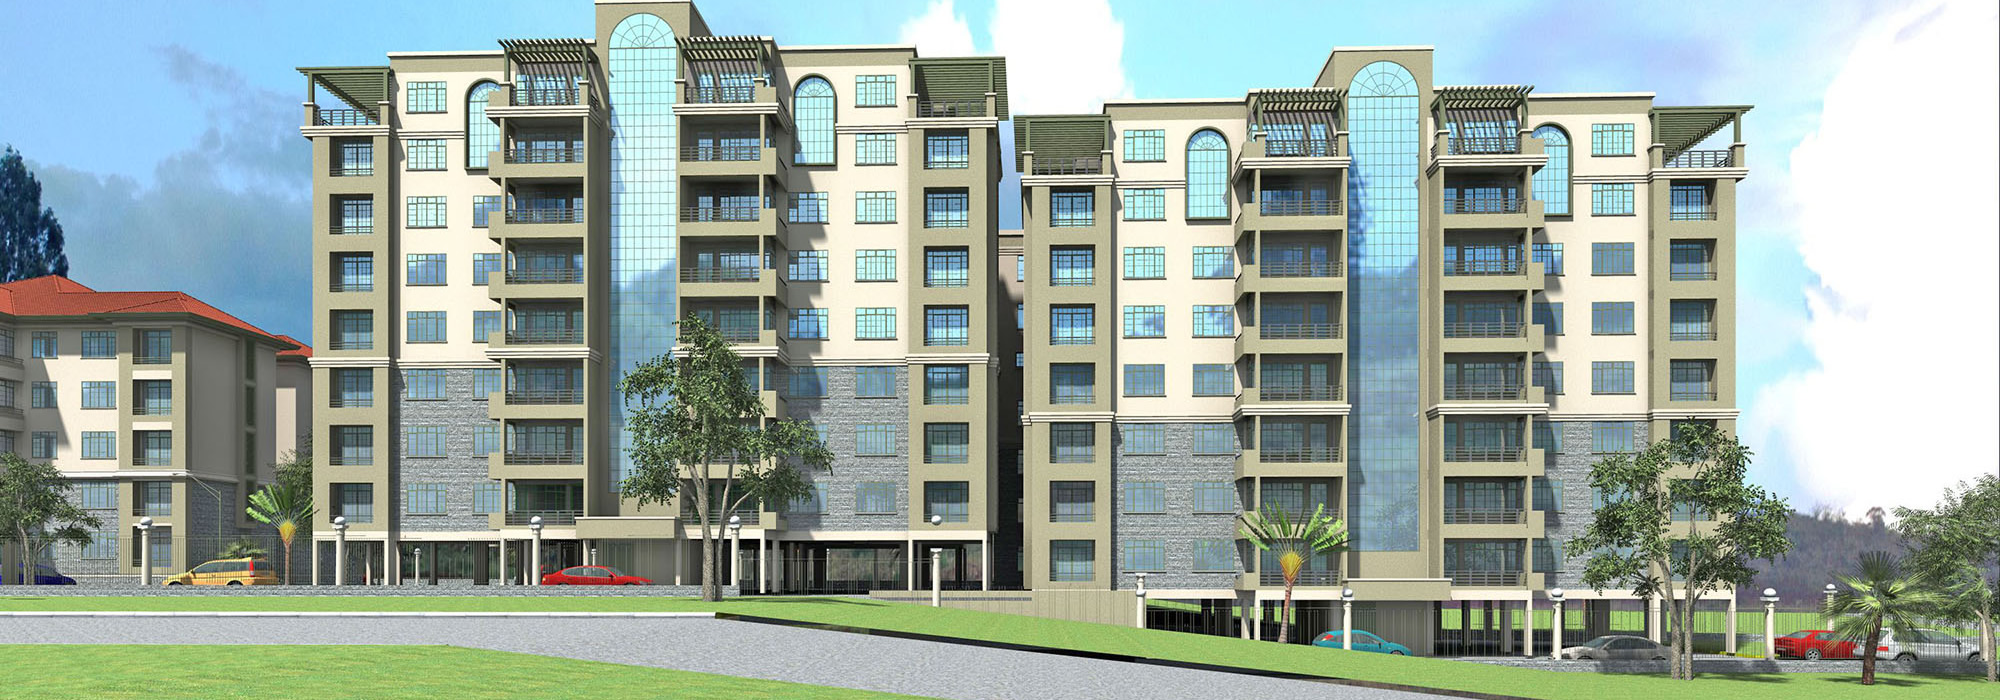 Bridgeview Park Apartments- Off Waiyaki Way